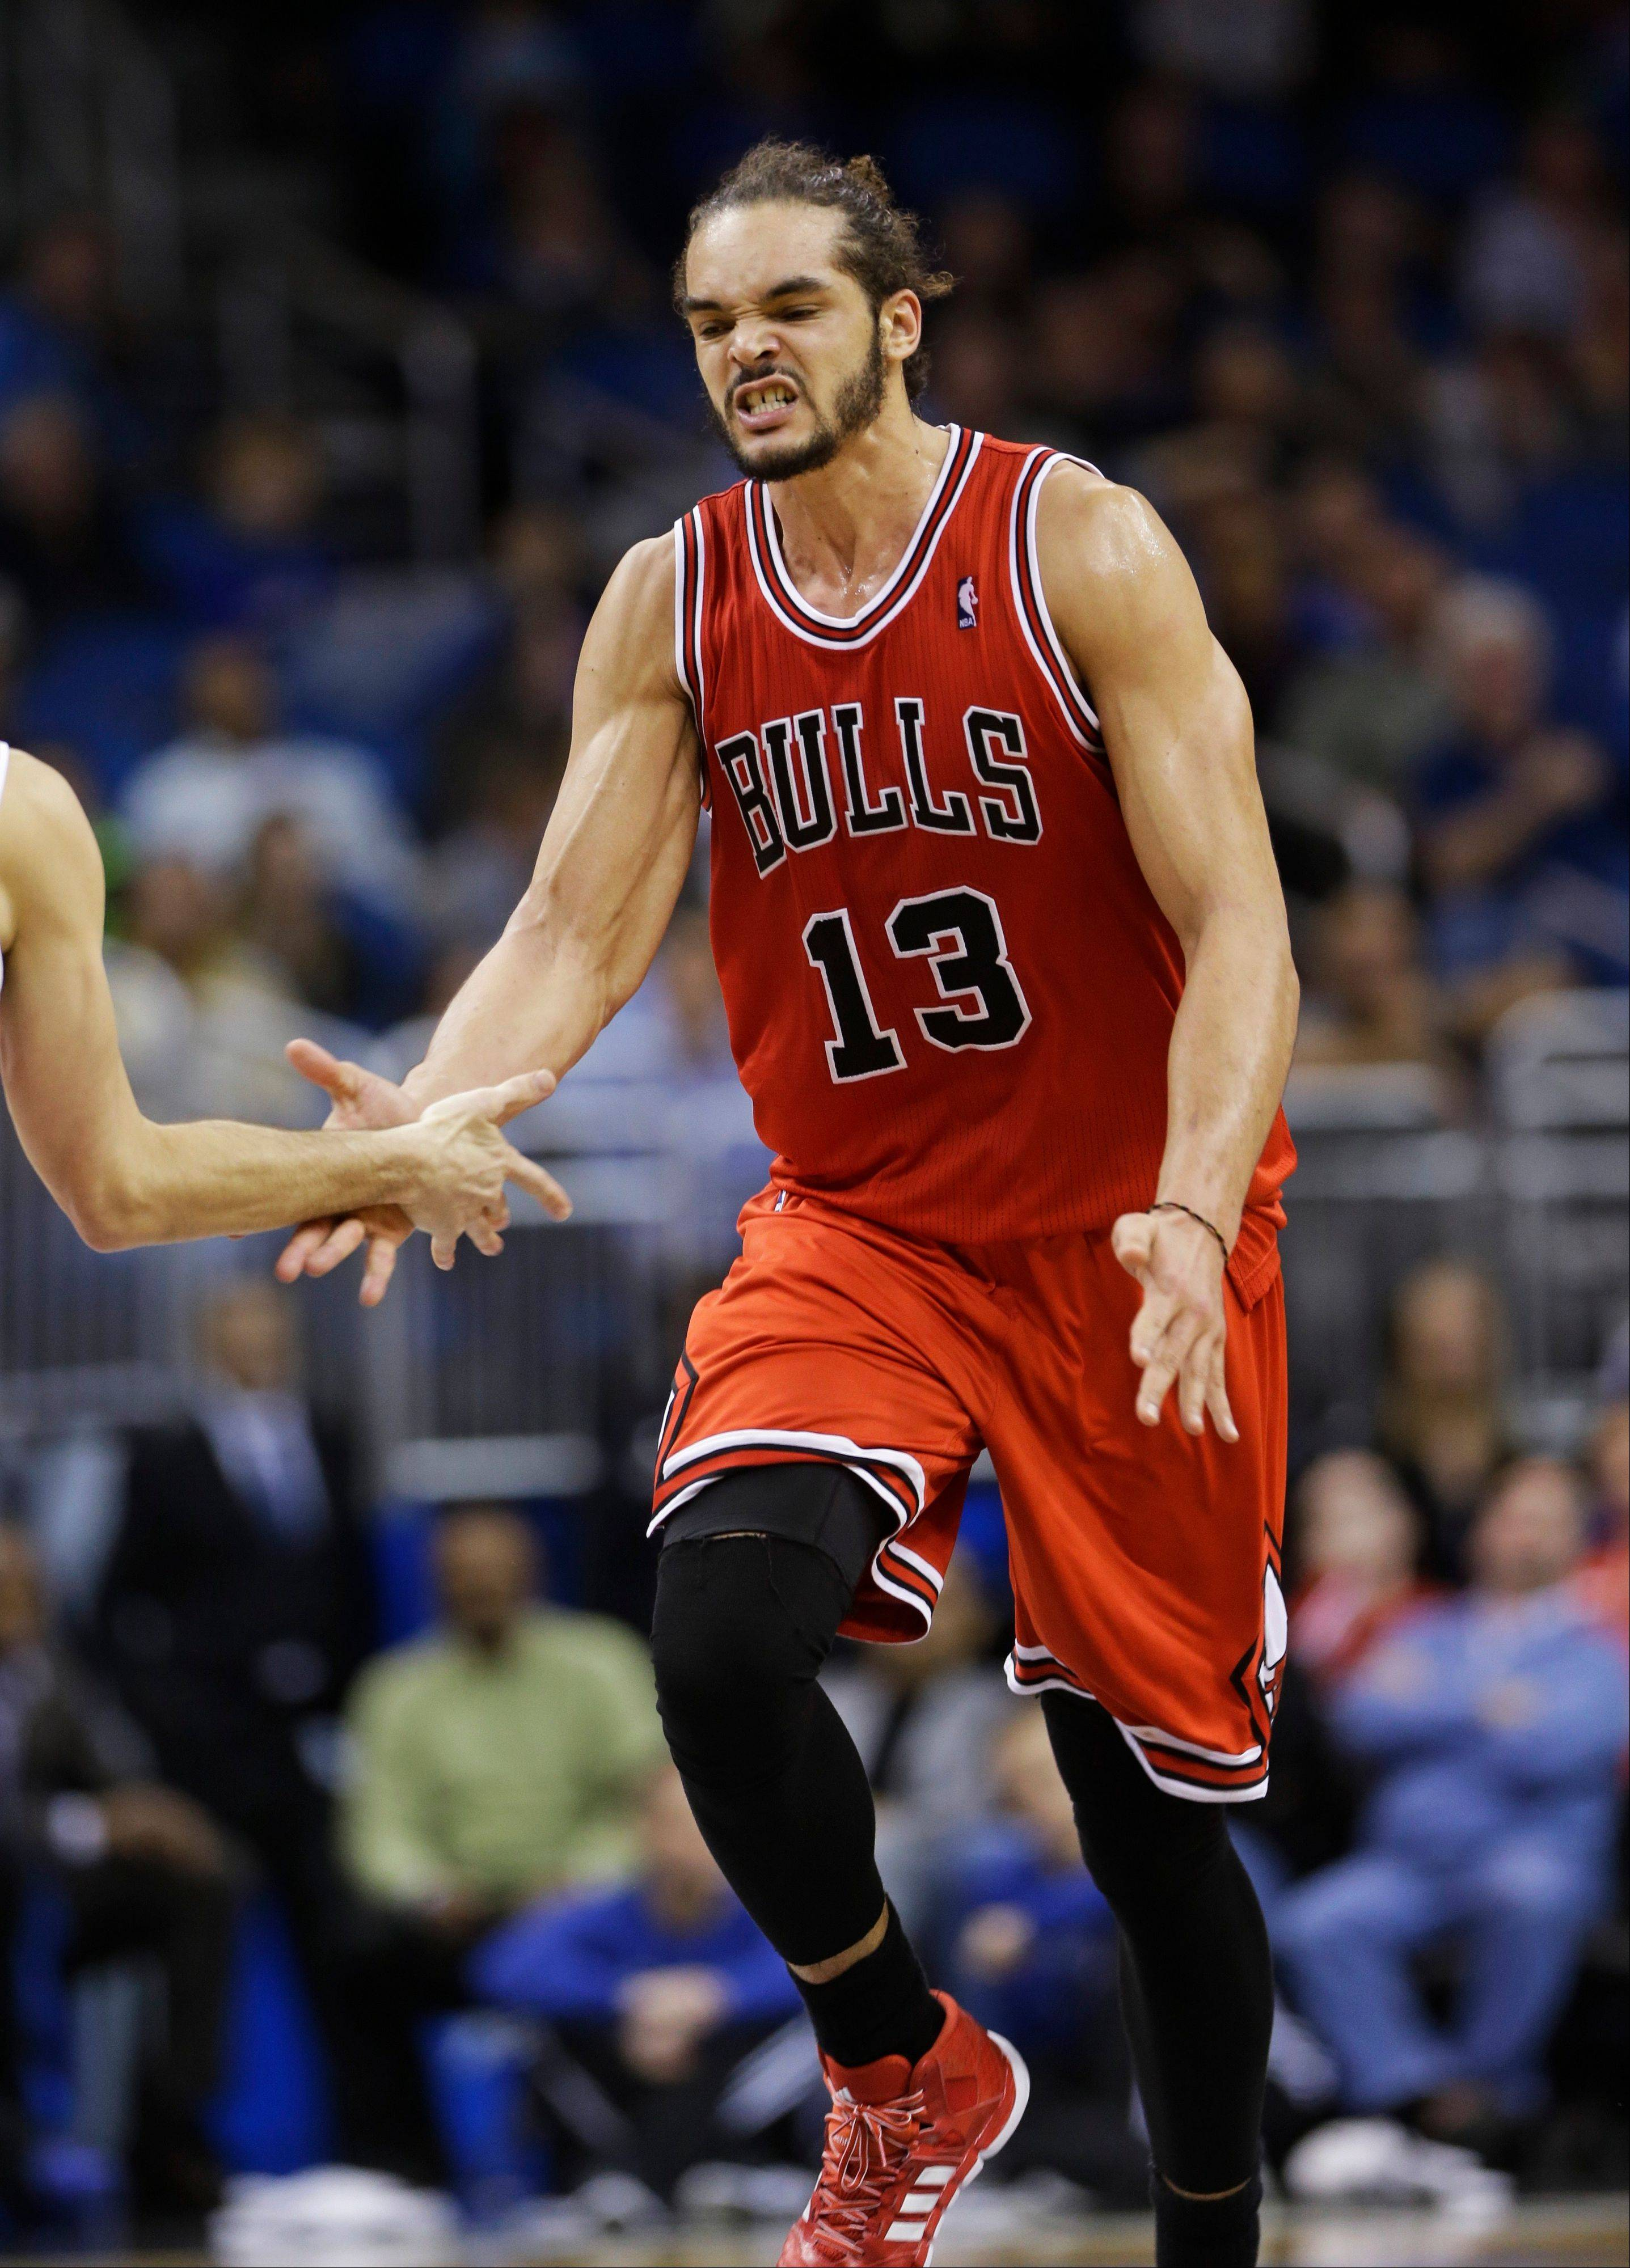 Chicago Bulls' Joakim Noah (13) slaps hands with teammate Kirk Hinrich after sinking a shot during the second half of an NBA basketball game against the Orlando Magic in Orlando, Fla., Wednesday, Jan. 15, 2014. Chicago won in triple overtime, 128-125. (AP Photo/John Raoux)